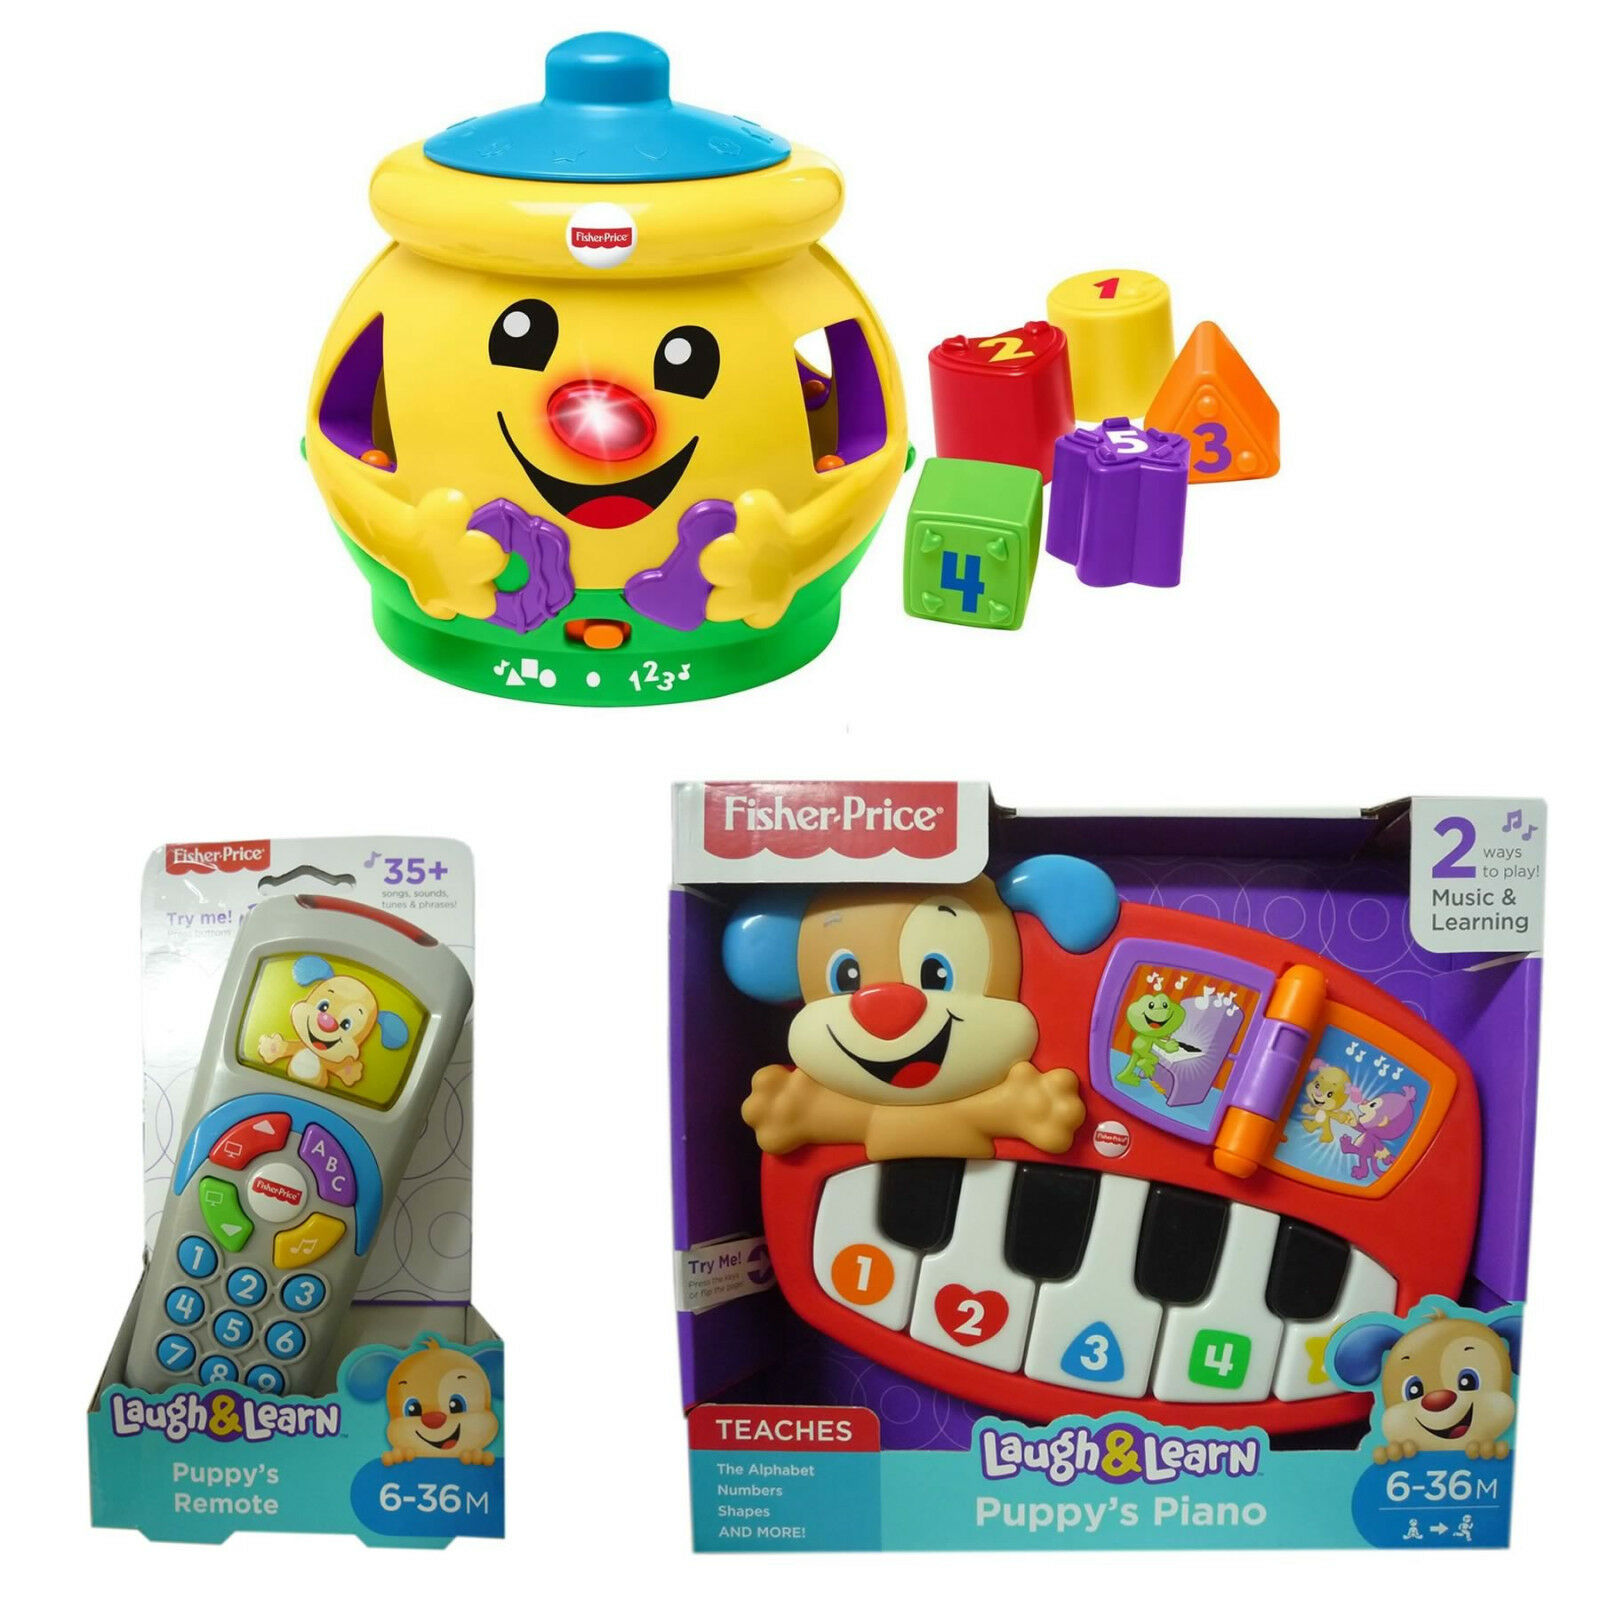 Fisher Price Toy Selection Thomas Chatter Phone Clock Puppy Piano Story Book 1 Sur 9 Voir Plus